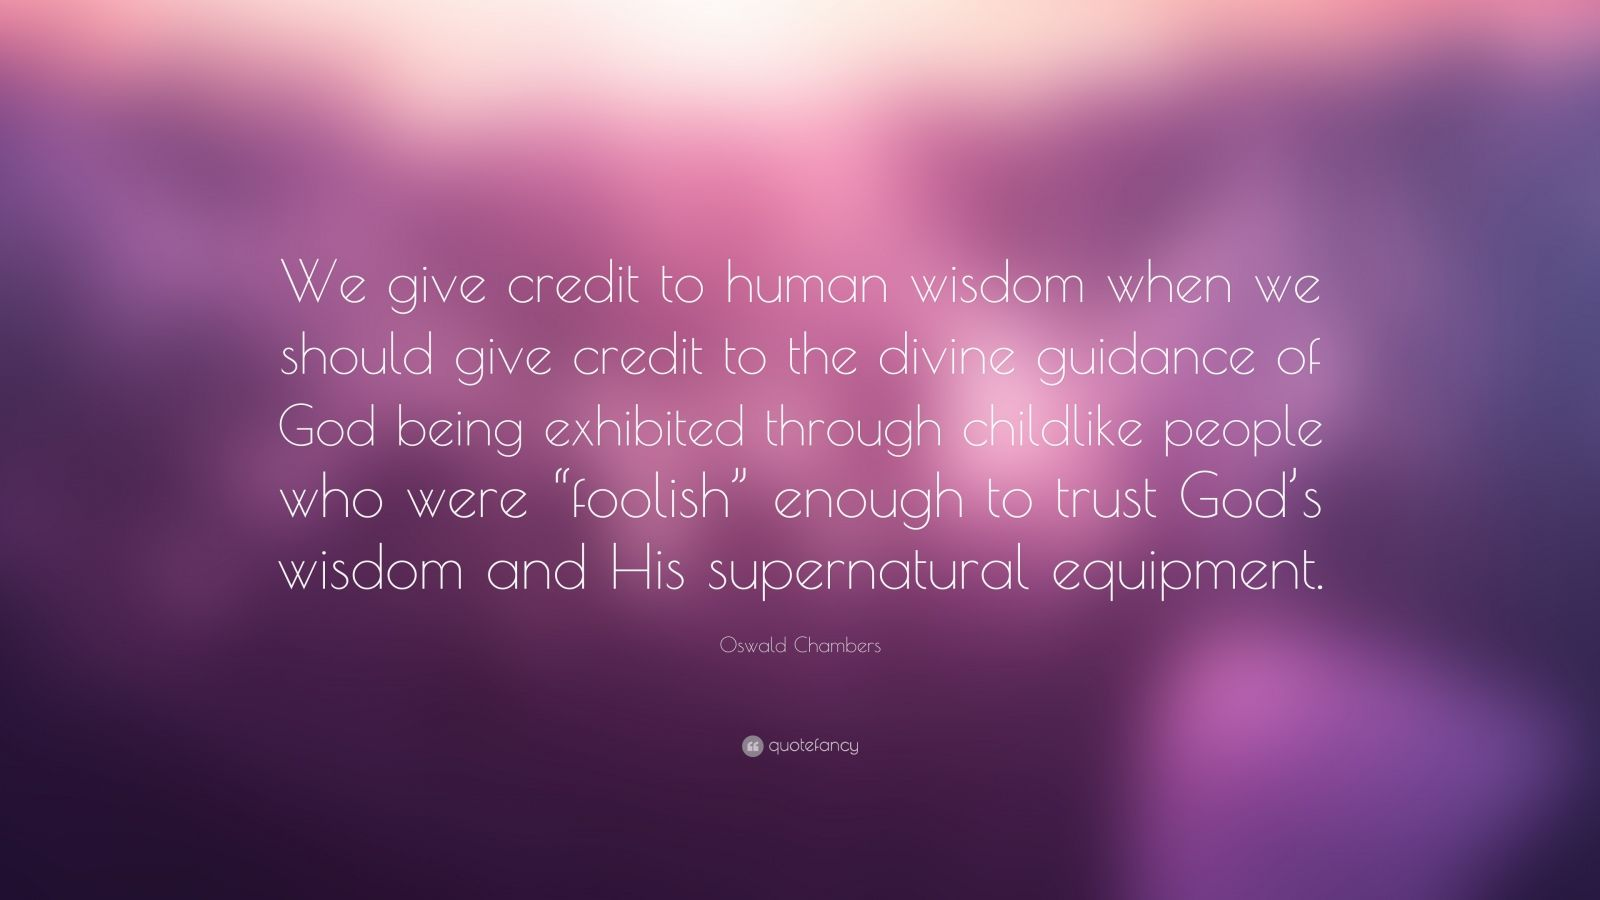 """Oswald Chambers Quote: """"We give credit to human wisdom when we should give credit to the divine guidance of God being exhibited through childlike people who were """"foolish"""" enough to trust God's wisdom and His supernatural equipment."""""""